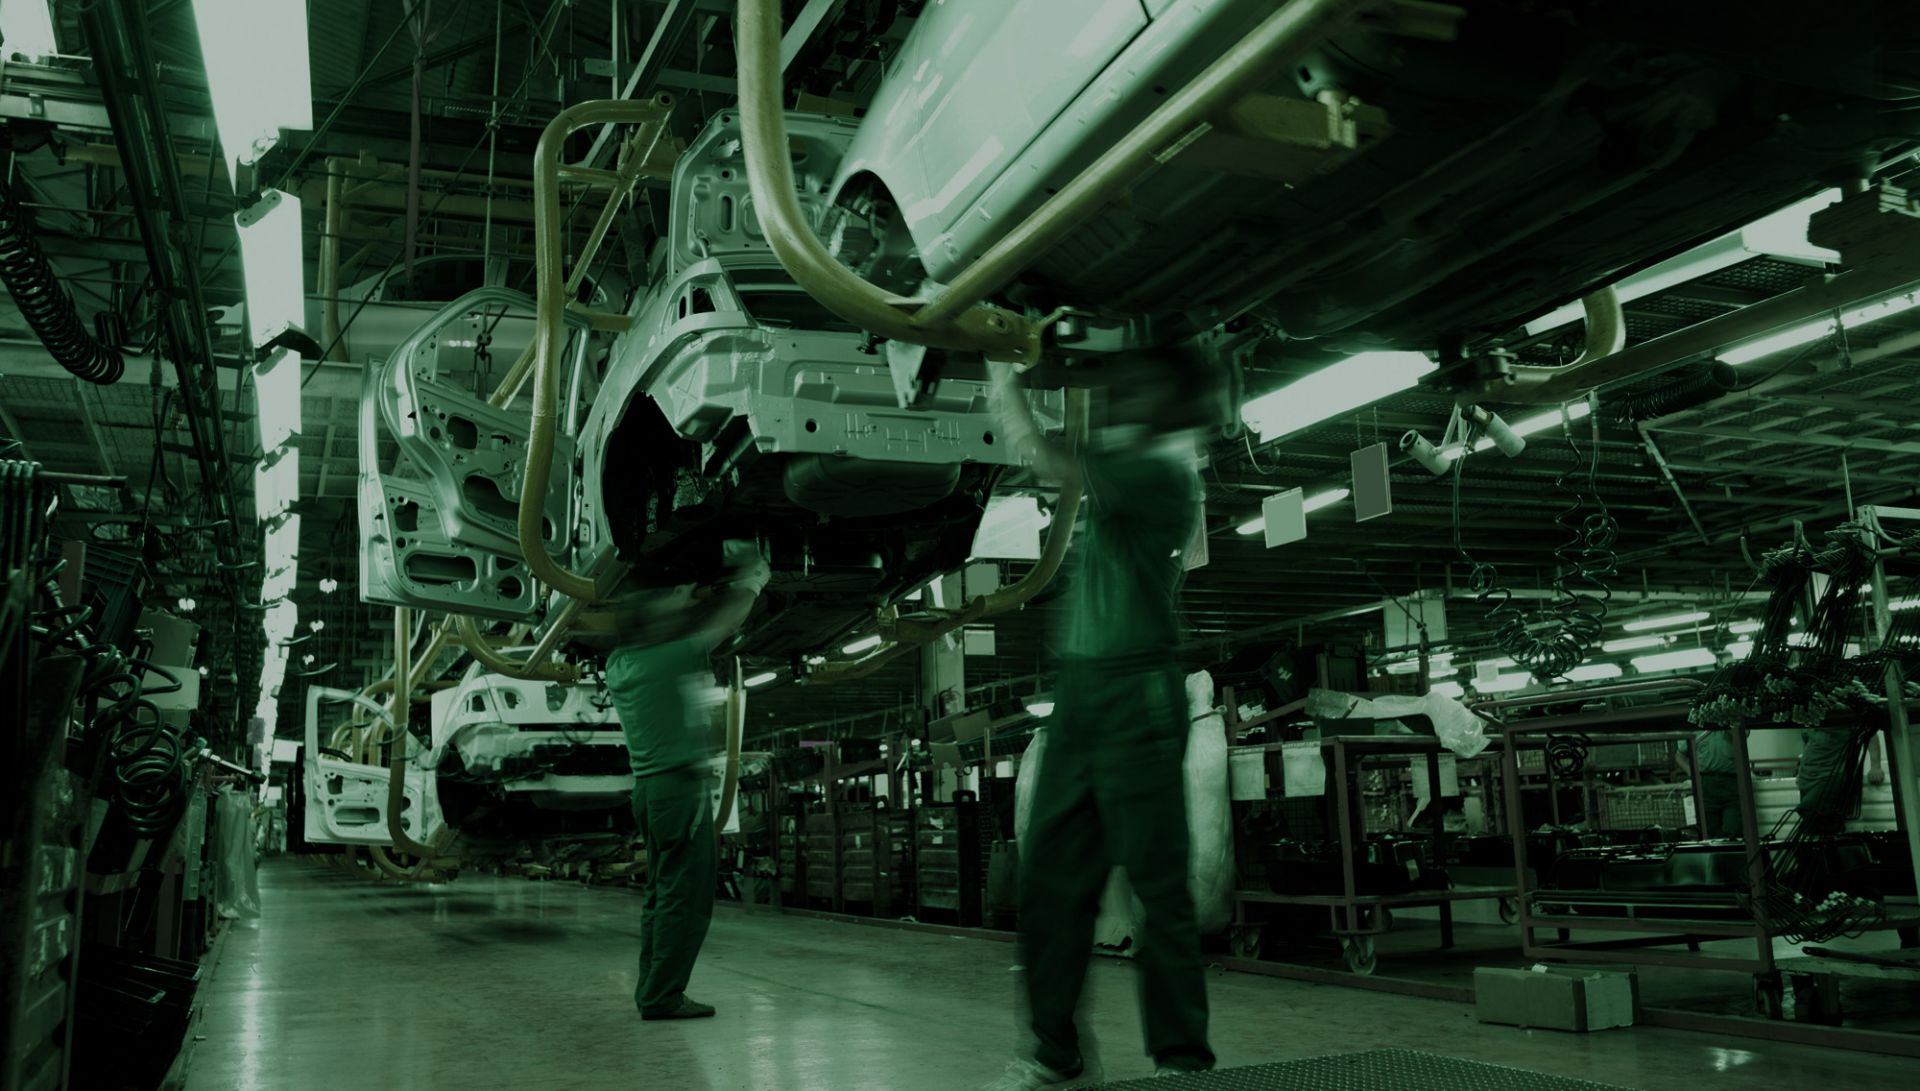 Automotive industry image of car manufacturing line